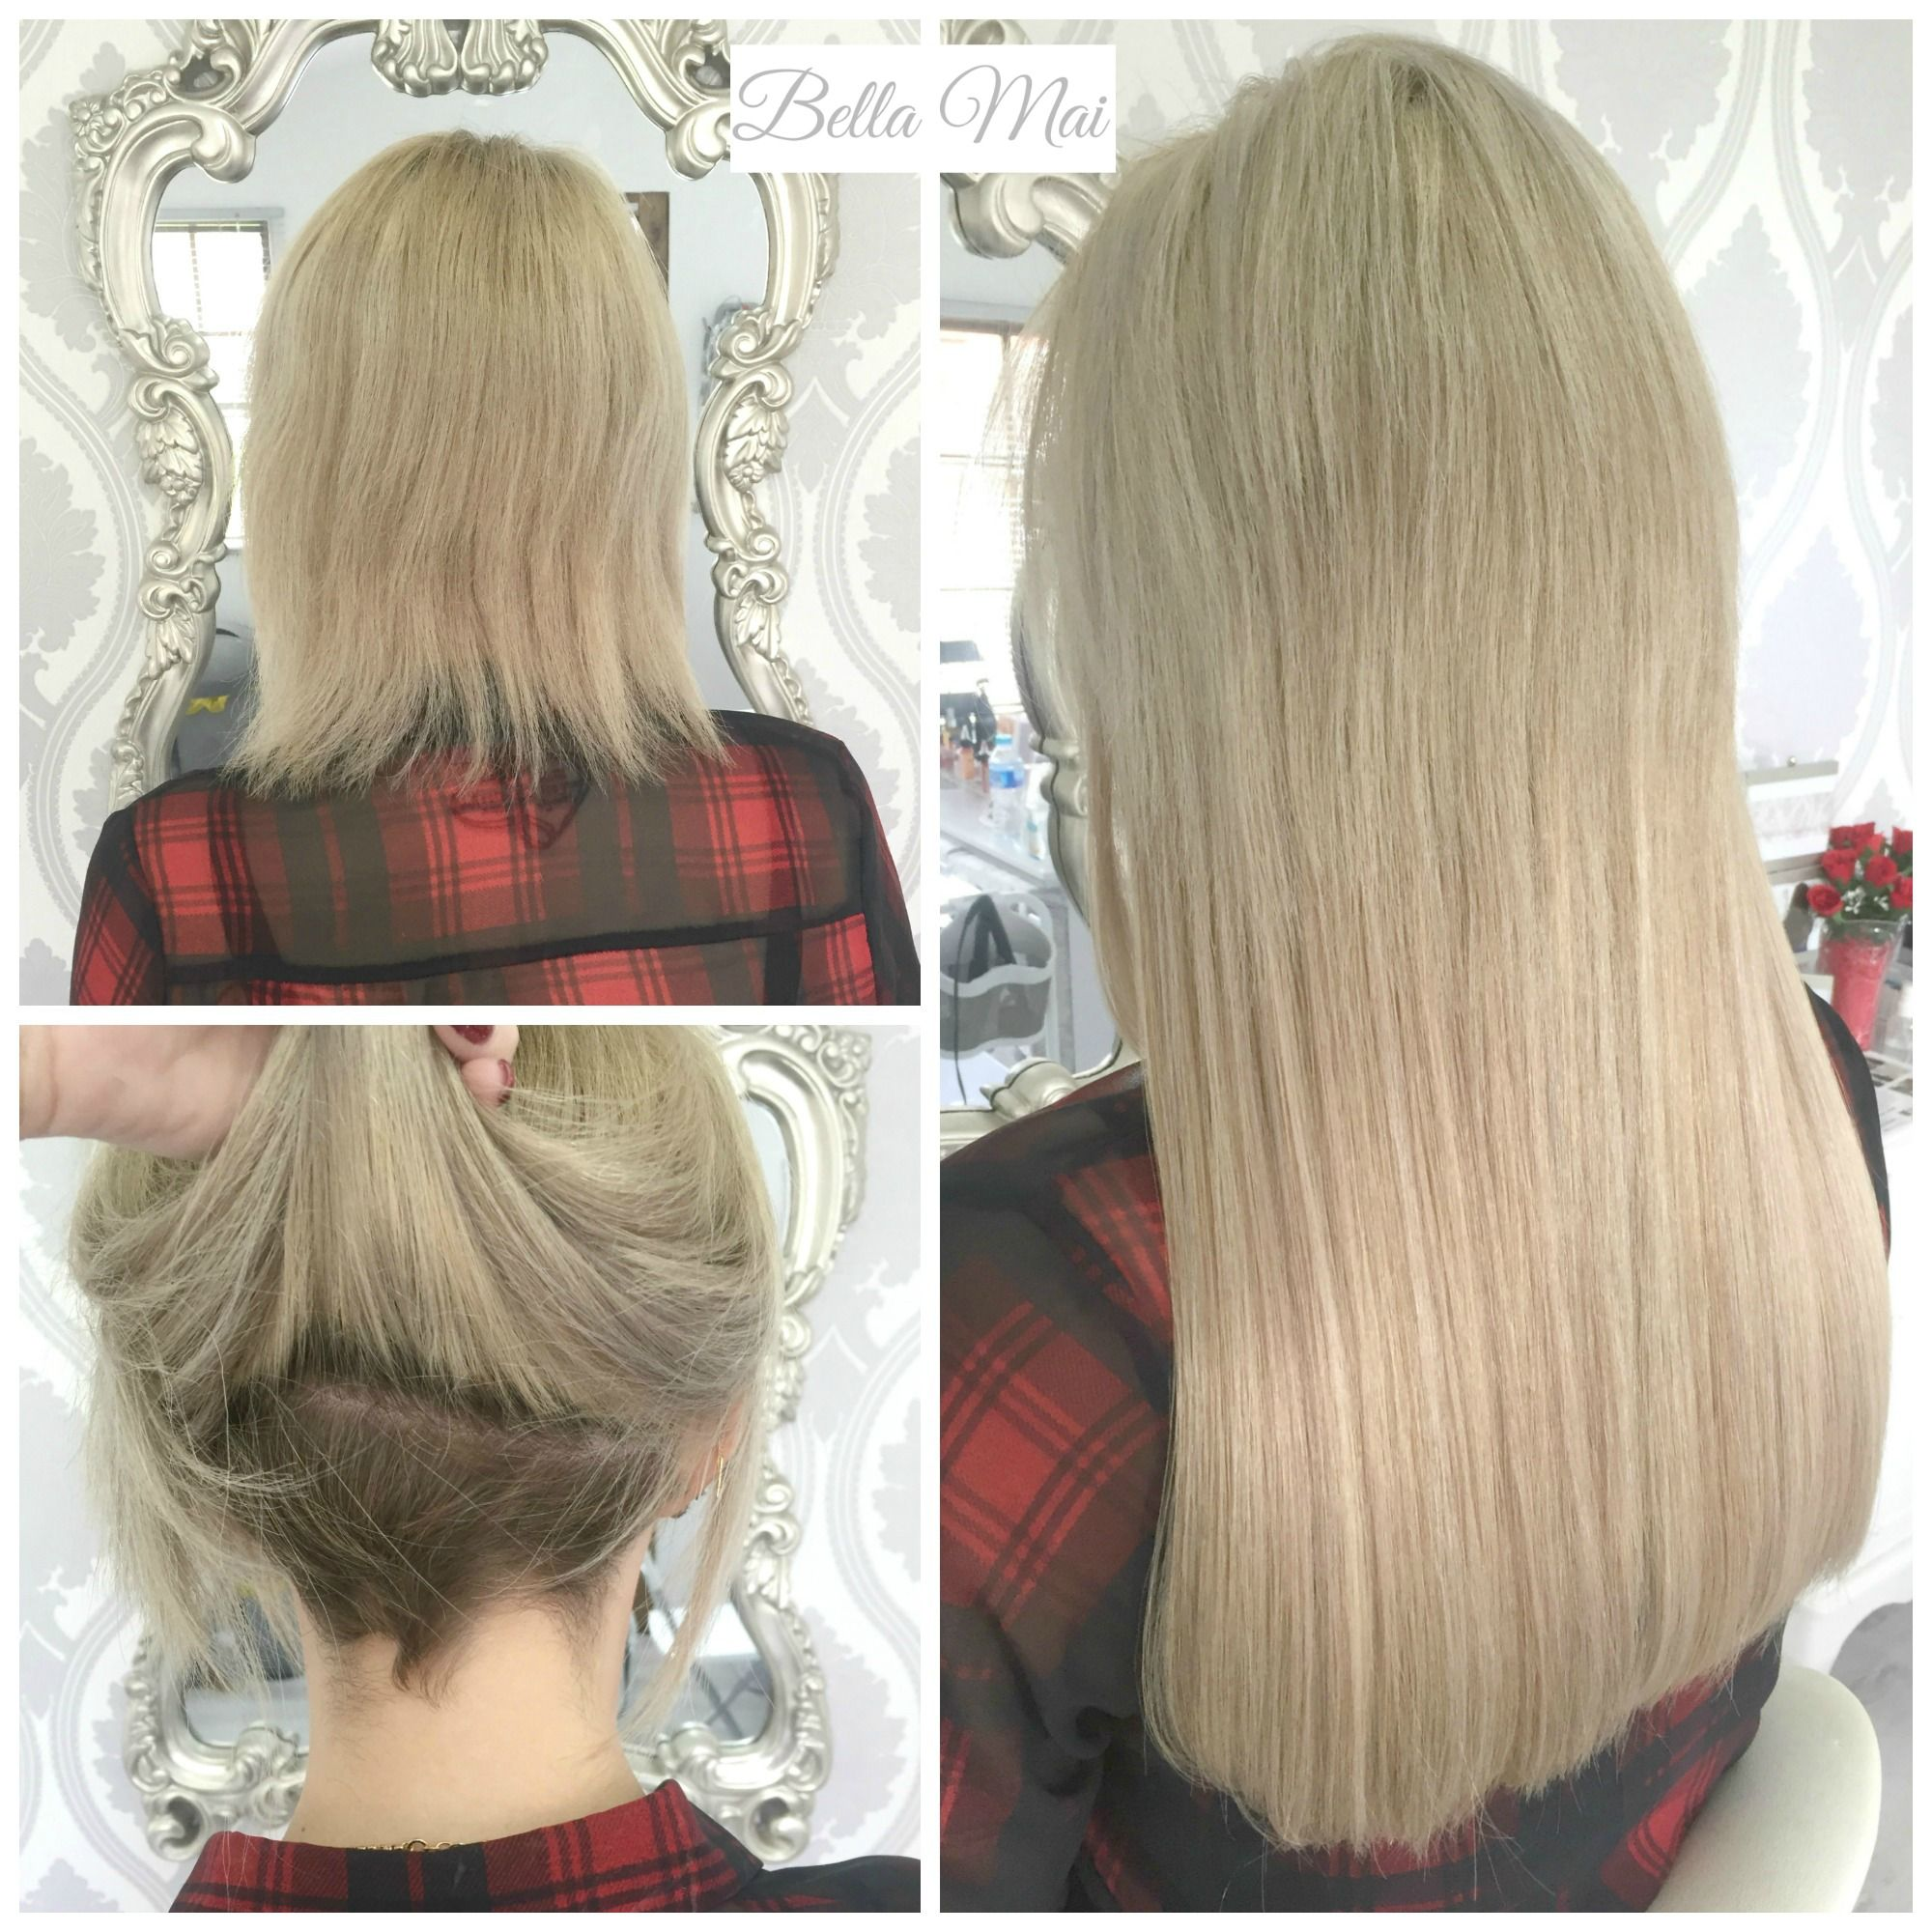 Nano Ring Extensions......Before and After Hair